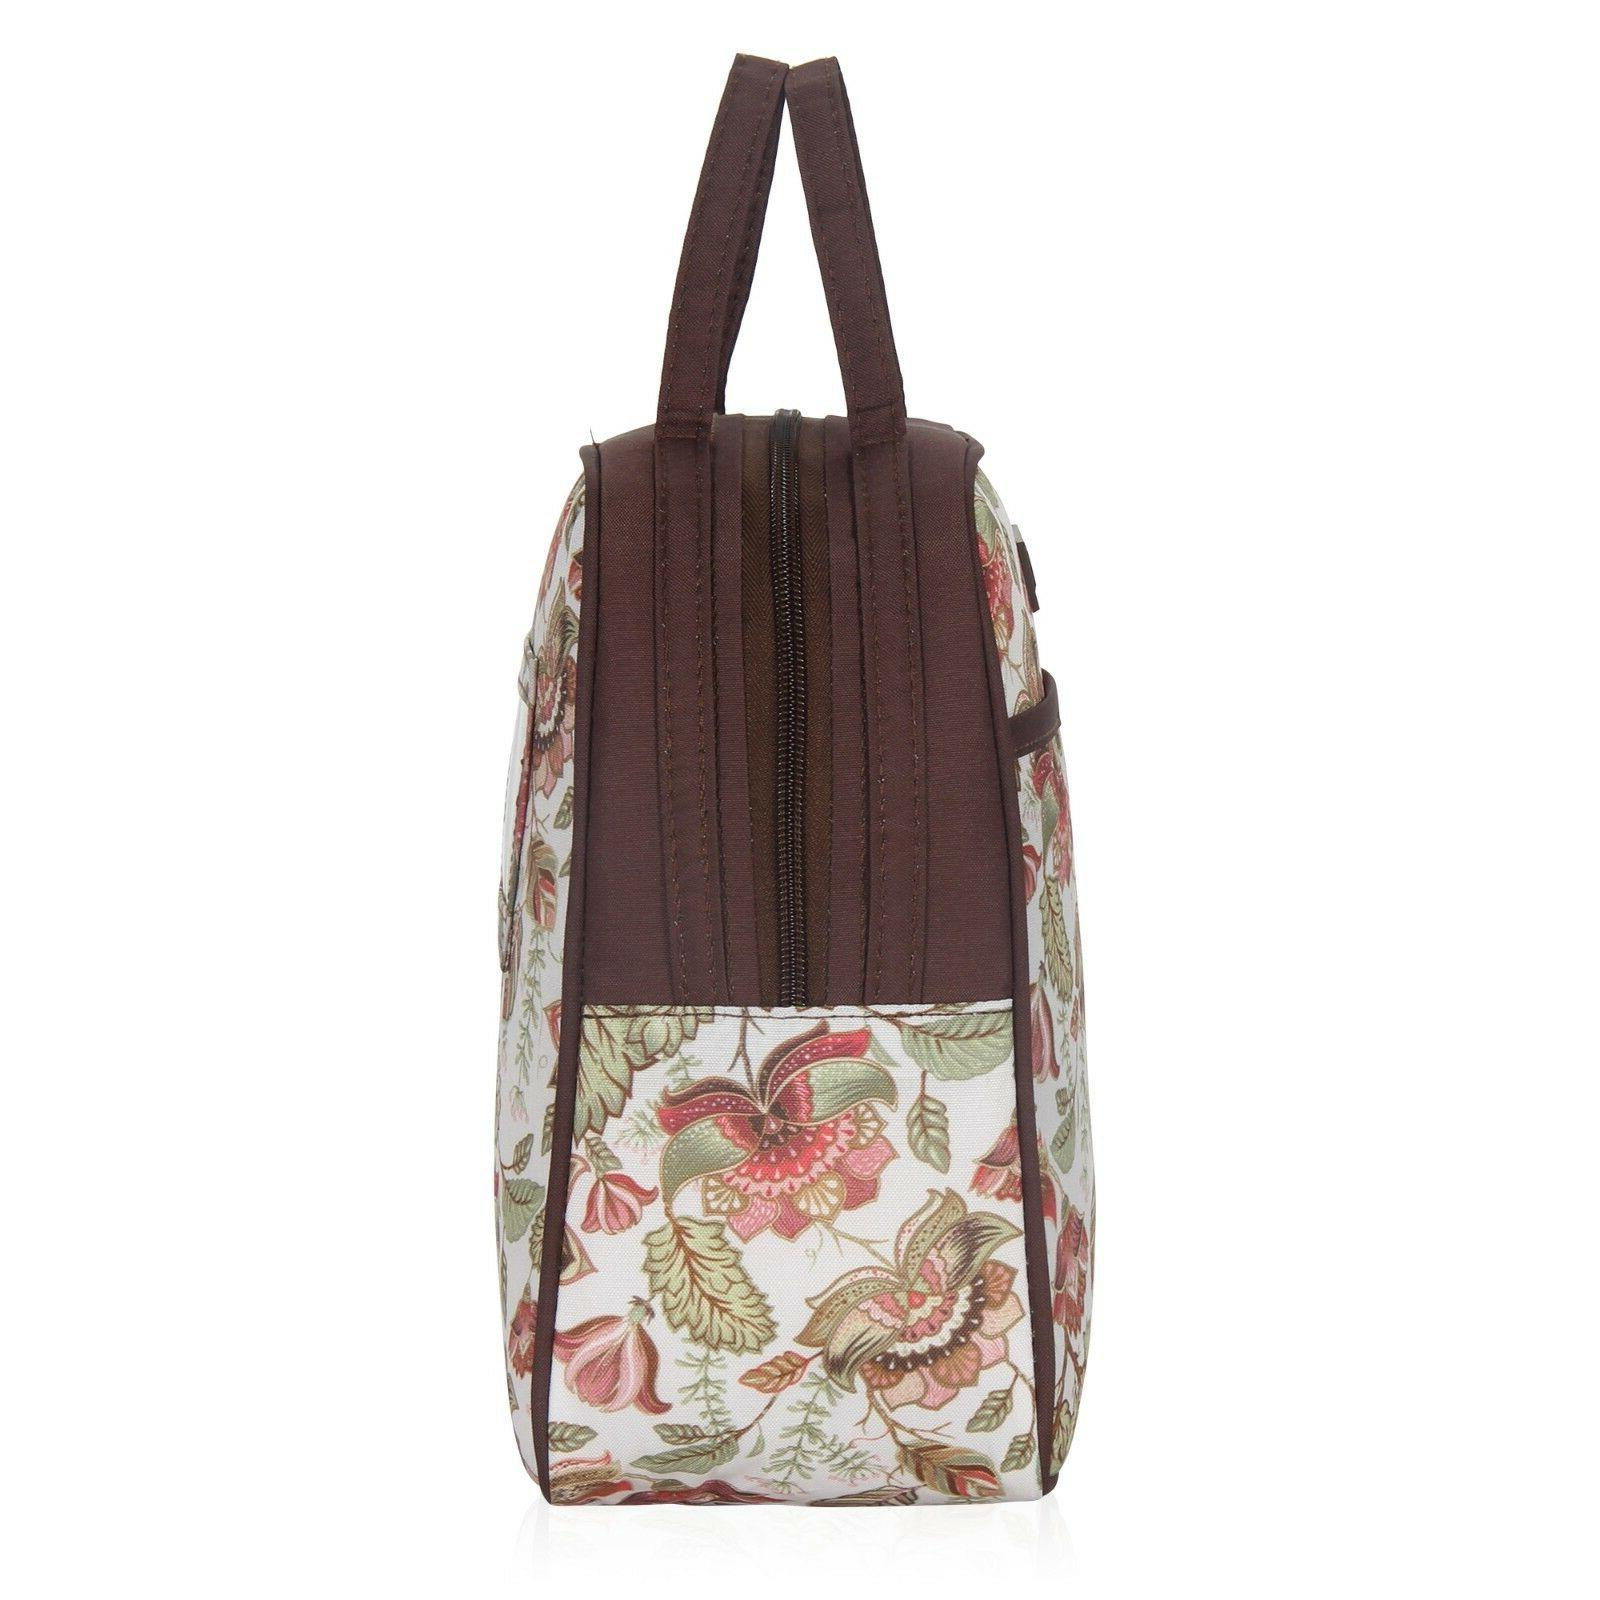 Recycle Cooler Insulated Lunch Bag for Women Men Tote Bag